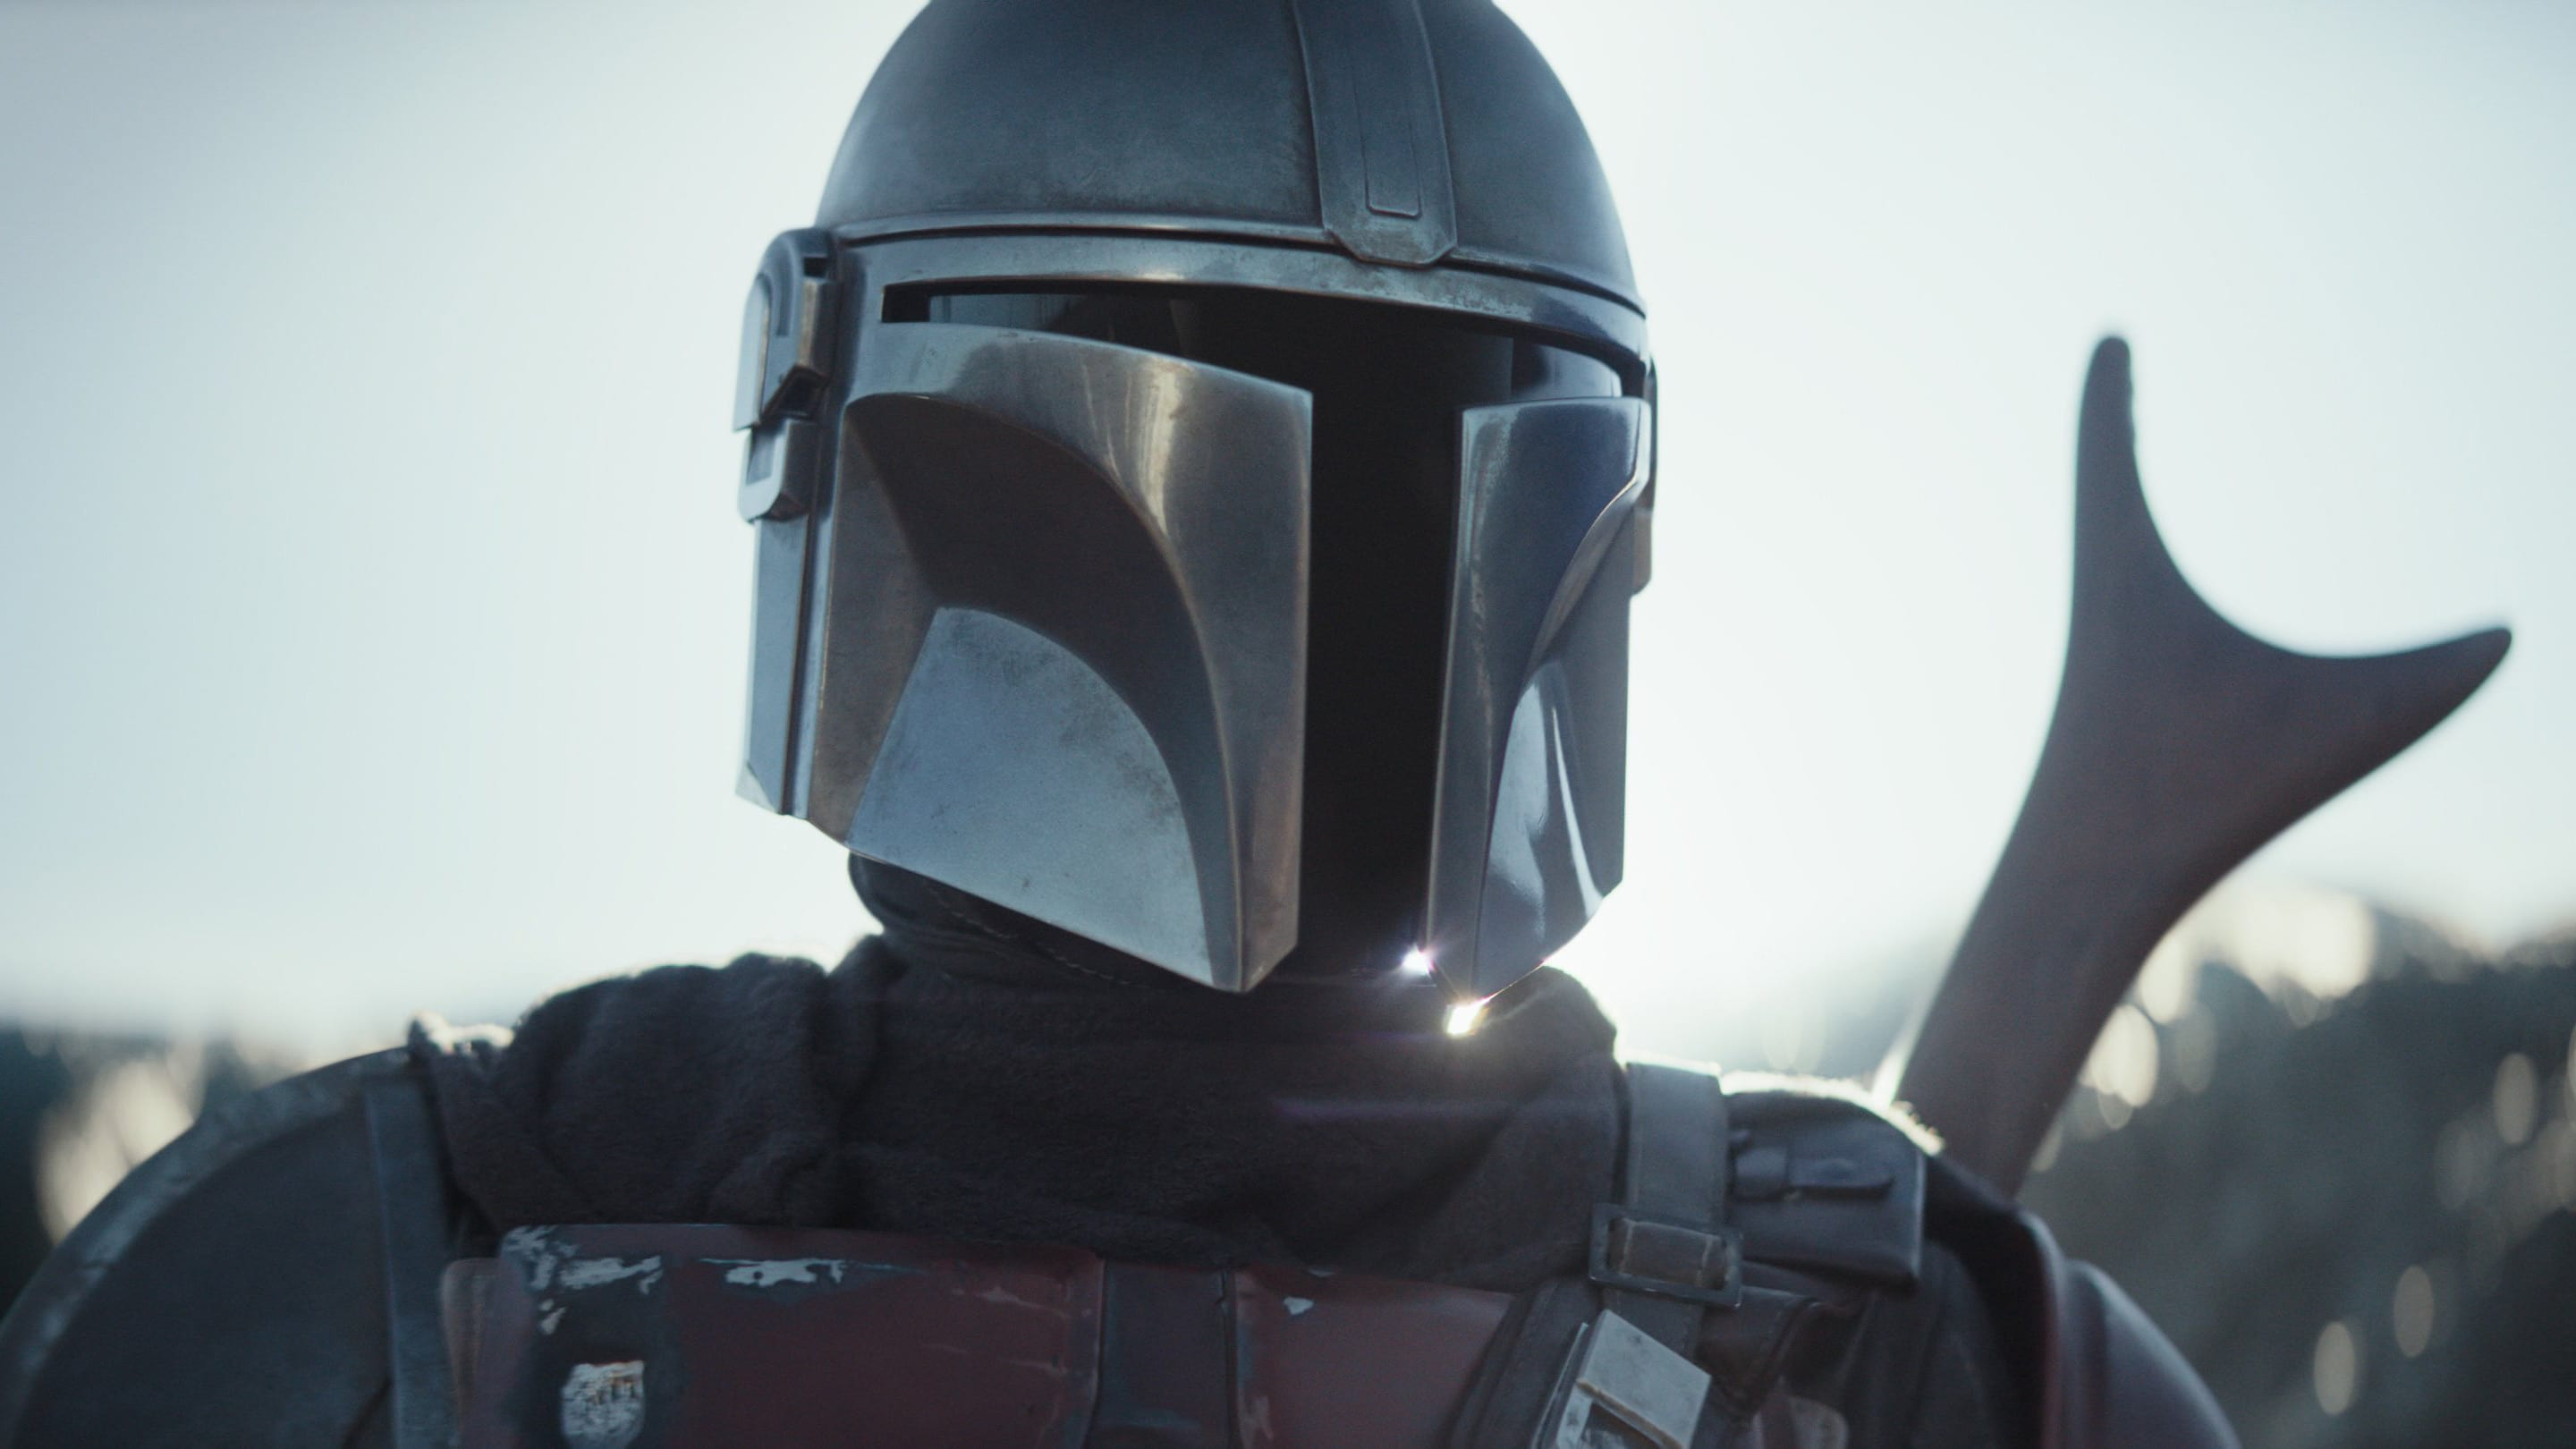 Disney Plus Star Wars the Mandalorian reviewed on Christian Podcast Cinematic Doctrine